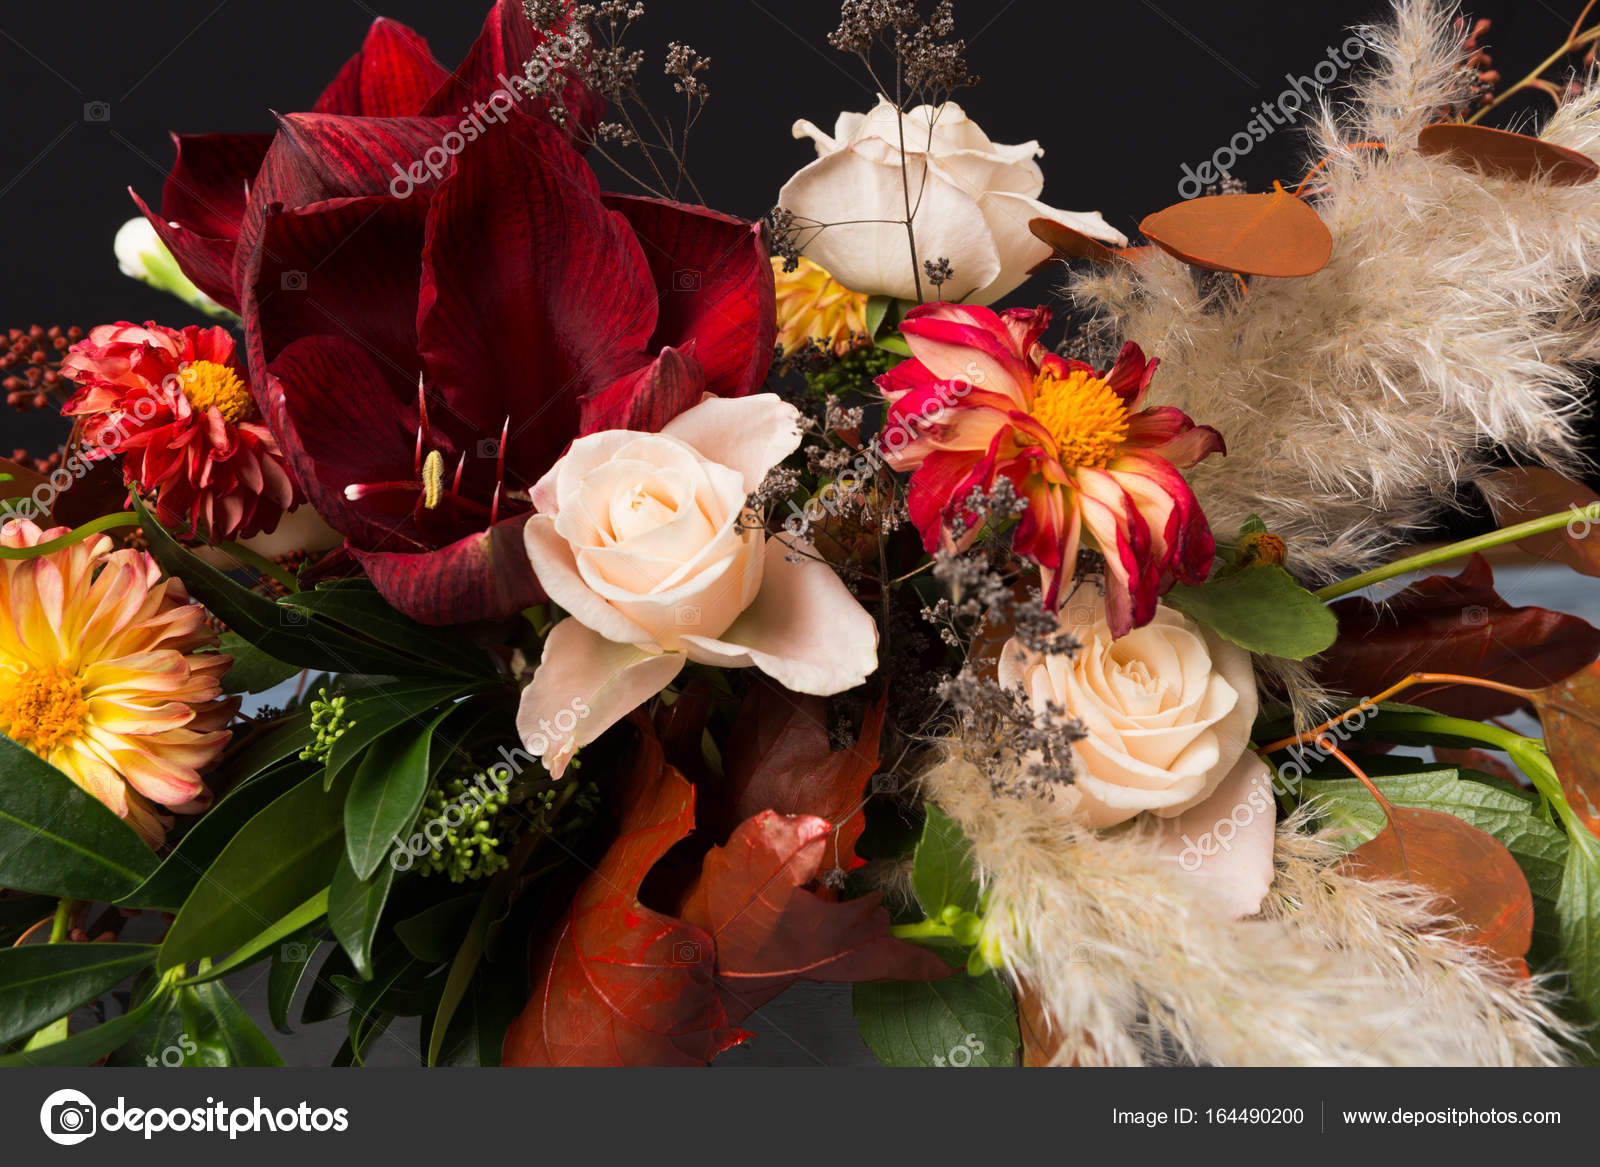 Fall Bouquet At Black Background Stock Photo Milkos 164490200